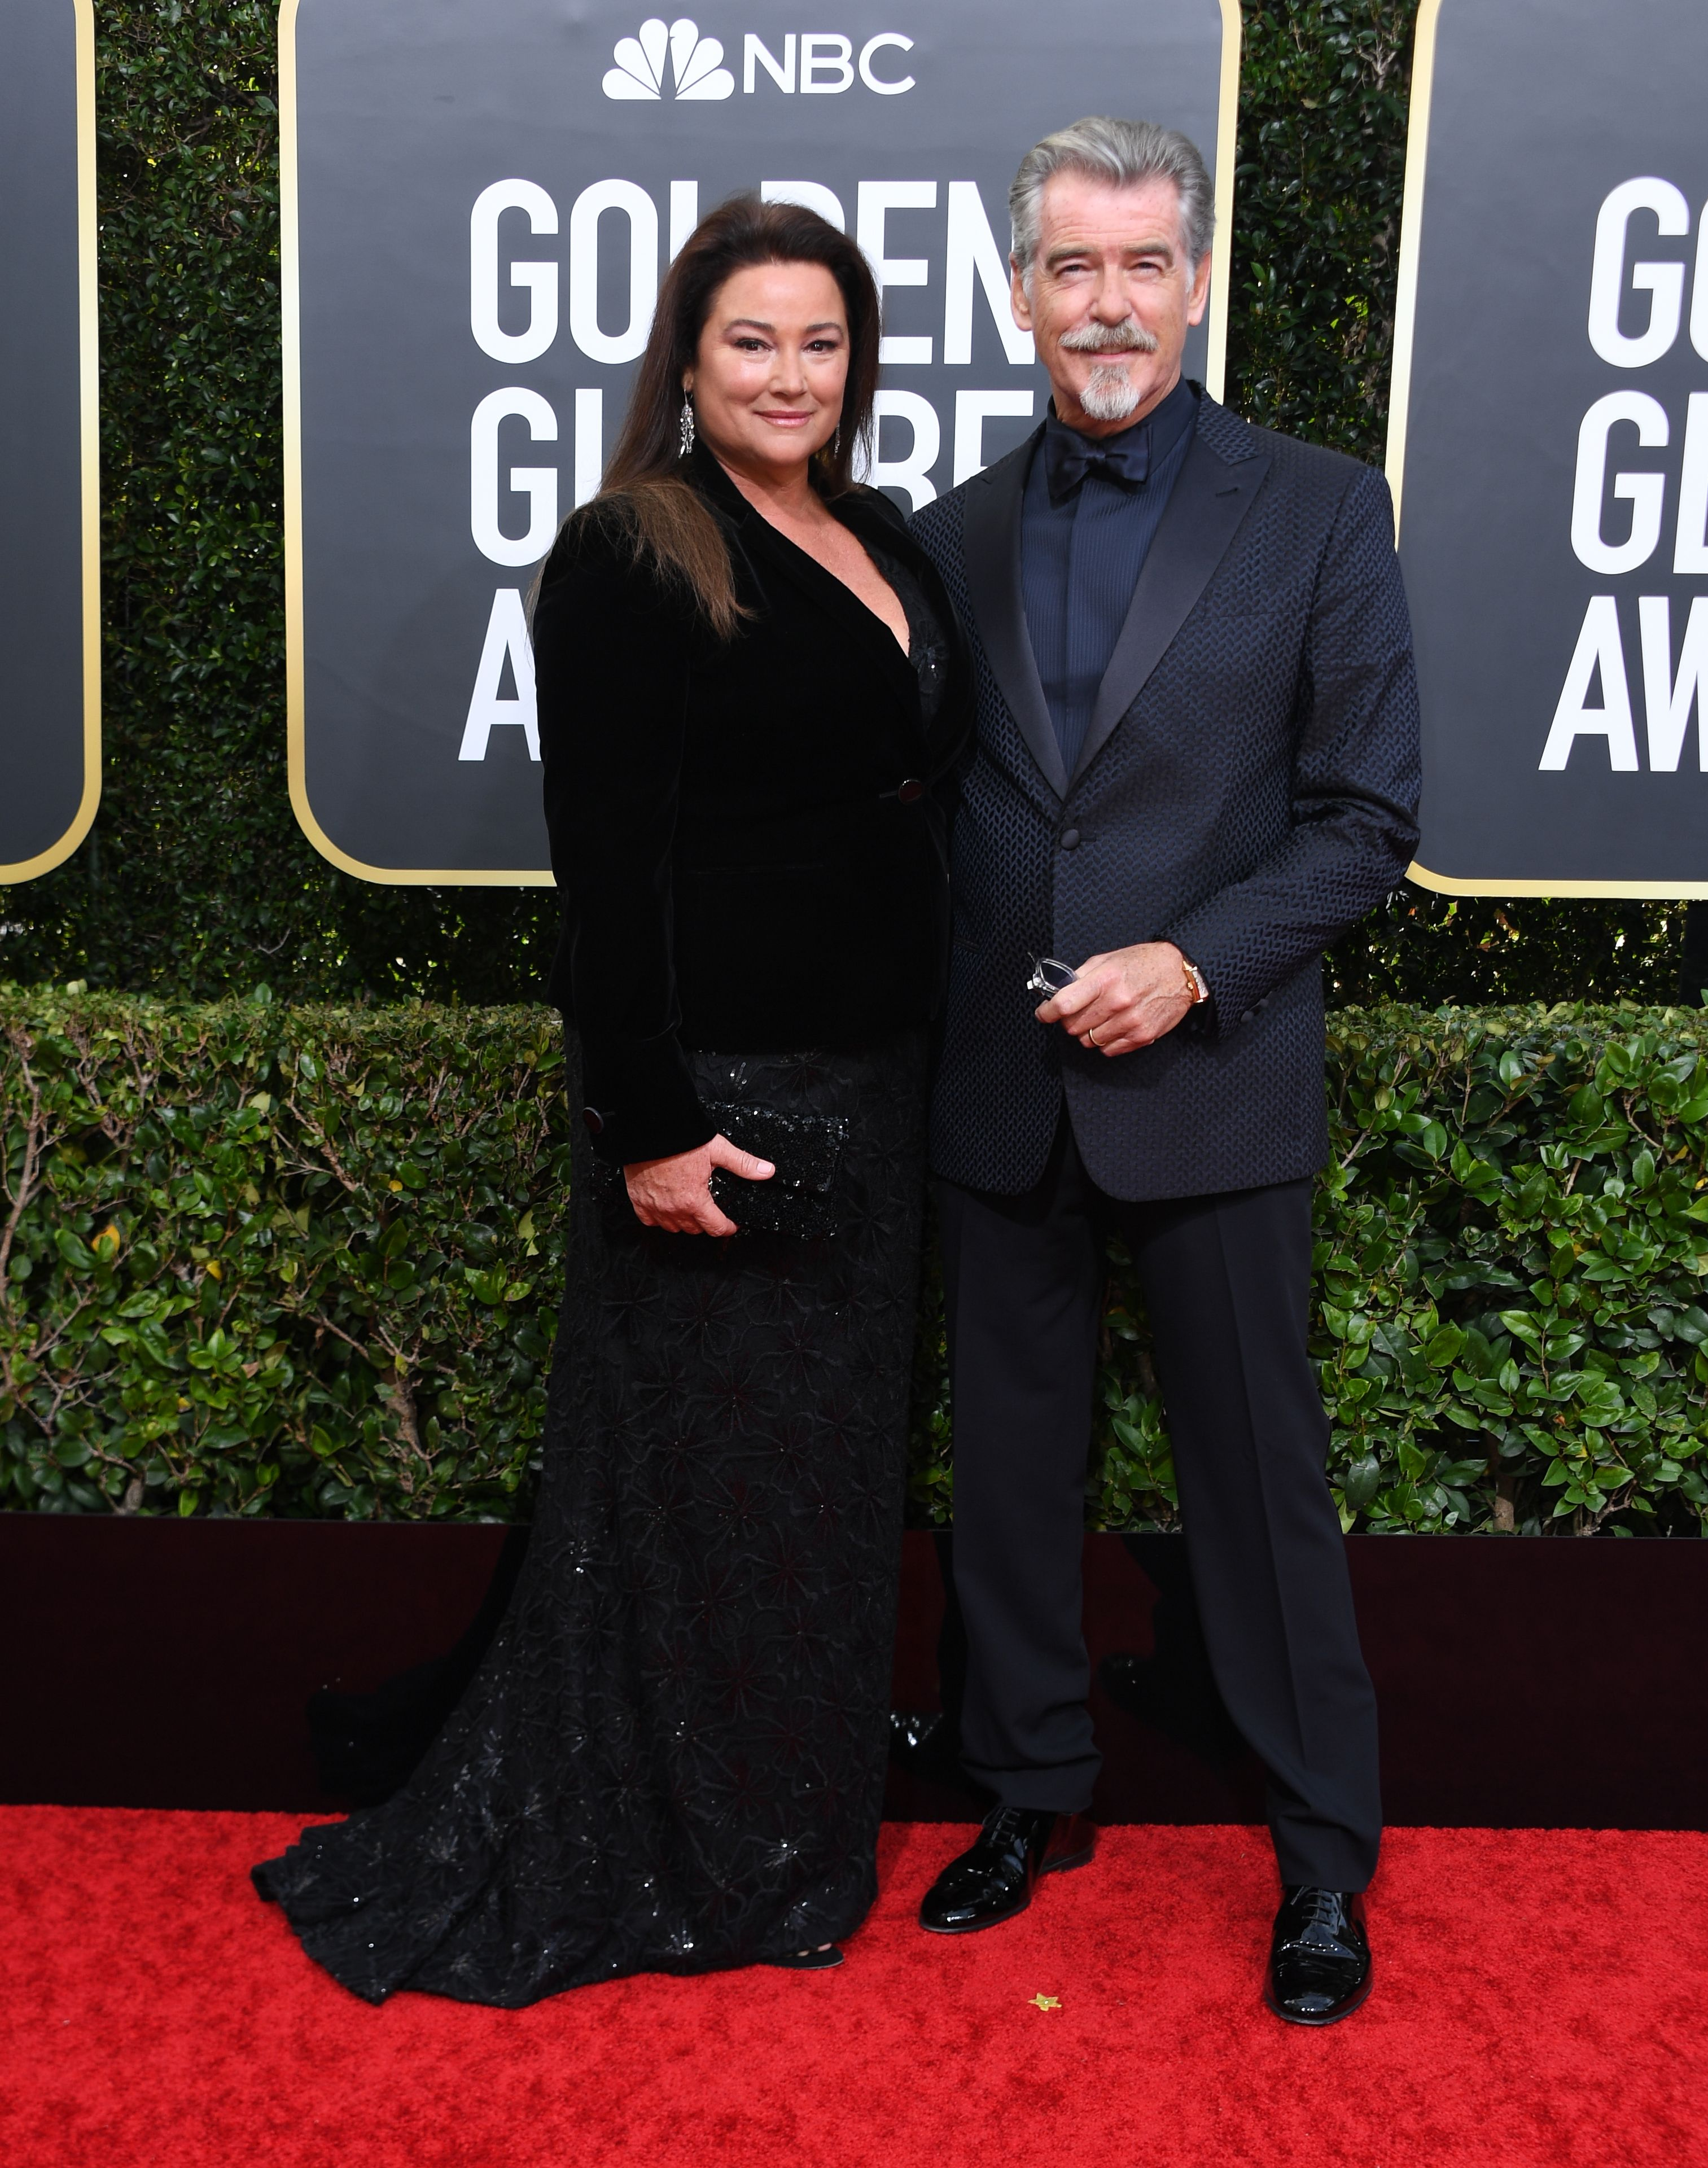 US-Irish actor Pierce Brosnan and his wife Keely Shaye Smith arrive for the 77th annual Golden Globe Awards on January 5, 2020, at The Beverly Hilton hotel in Beverly Hills, California. (Photo by VALERIE MACON / AFP) (Photo by VALERIE MACON/AFP via Getty Images)